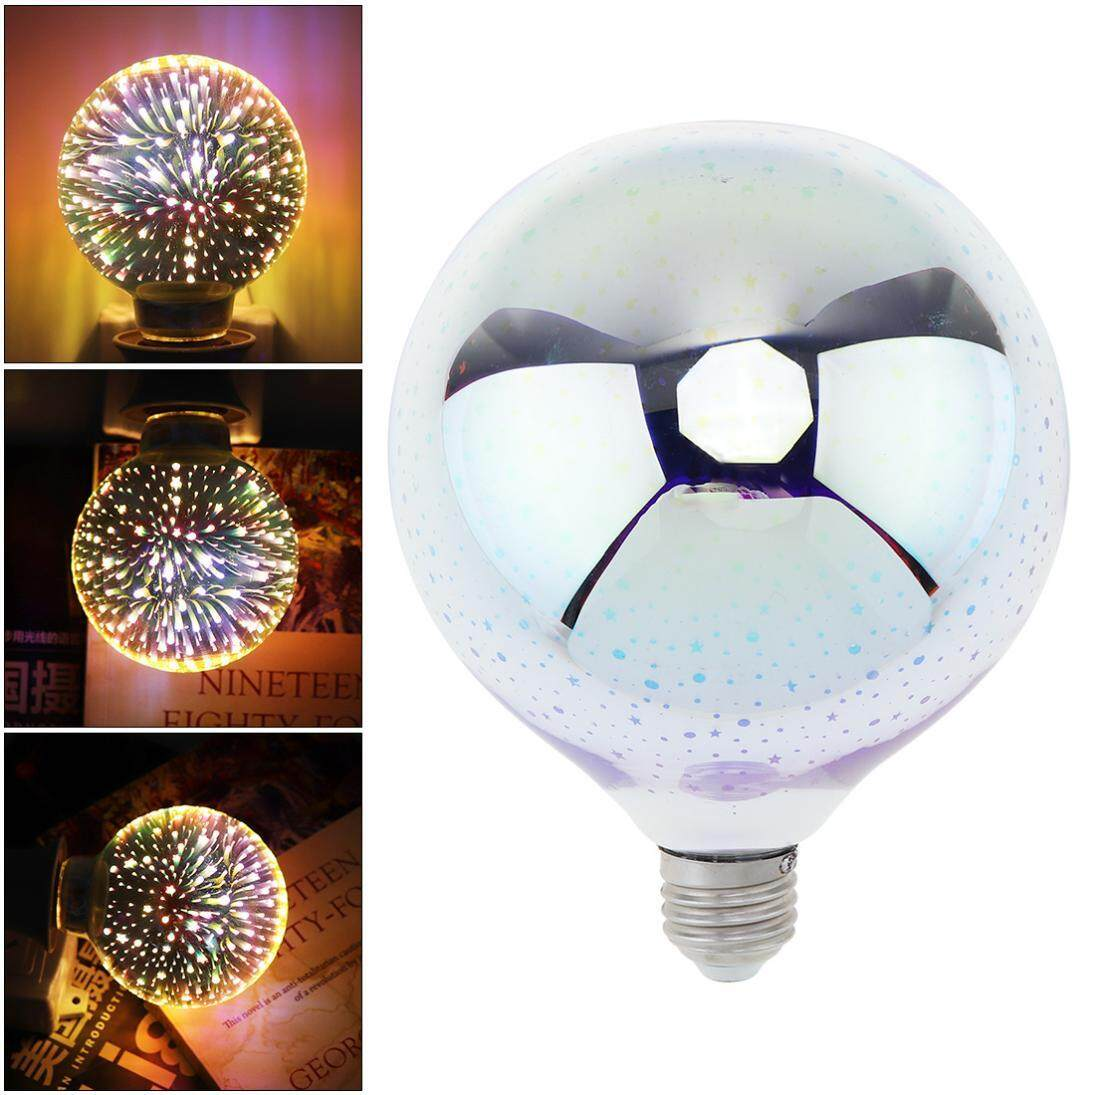 G125 E27 AC 85-265V 3W Dazzle Color 360 Degree Luminescence Angle Led Light Bulb 3D Decoration Fireworks Bulb - intl